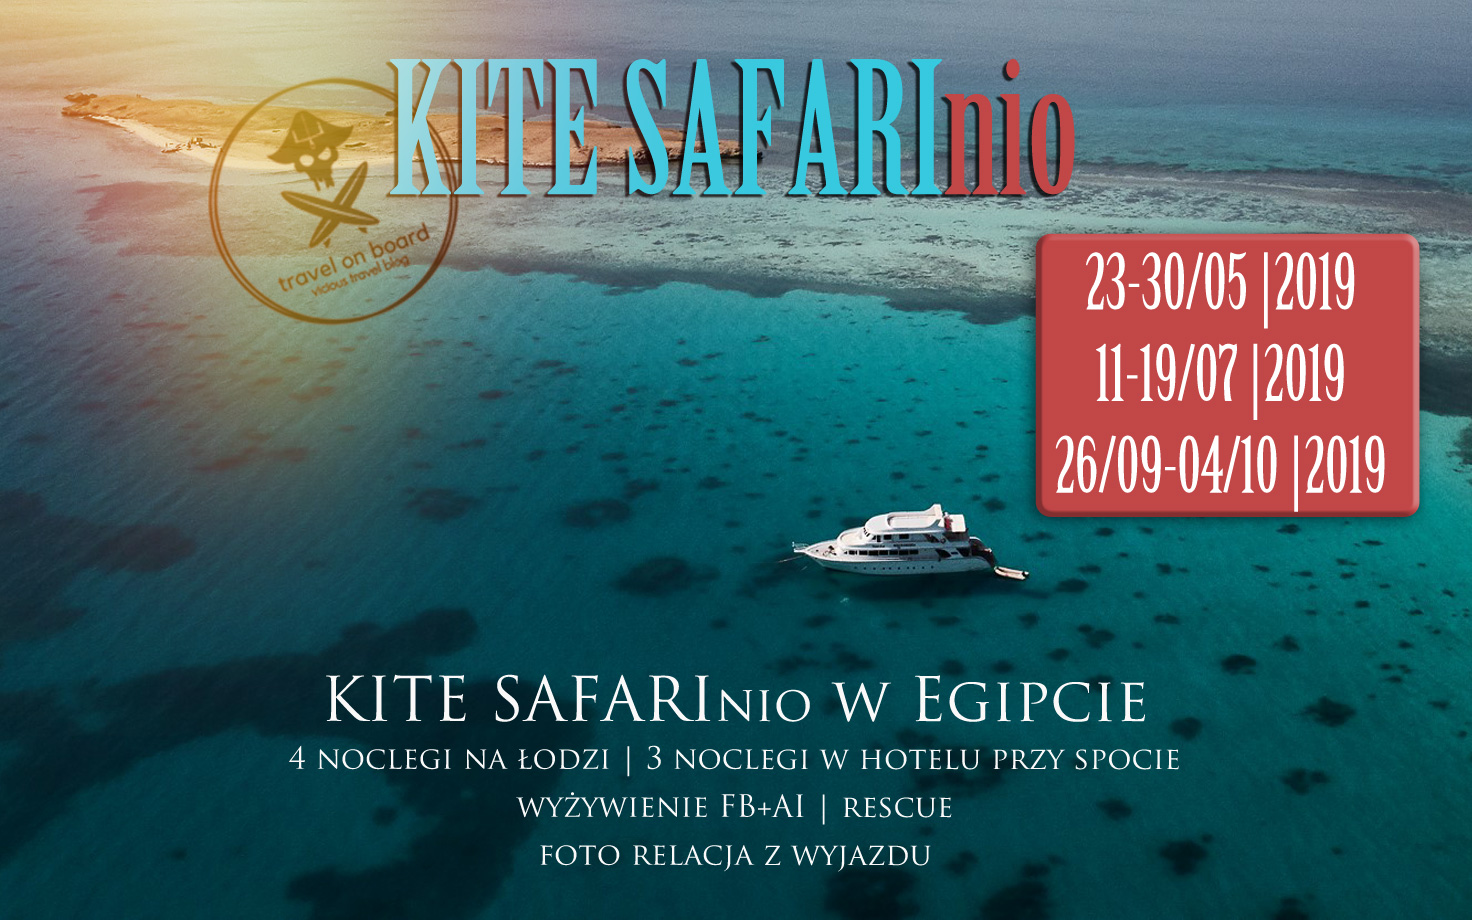 egipt kite safari safarinio 2019 wyjady na kajta progress camp szkolenia